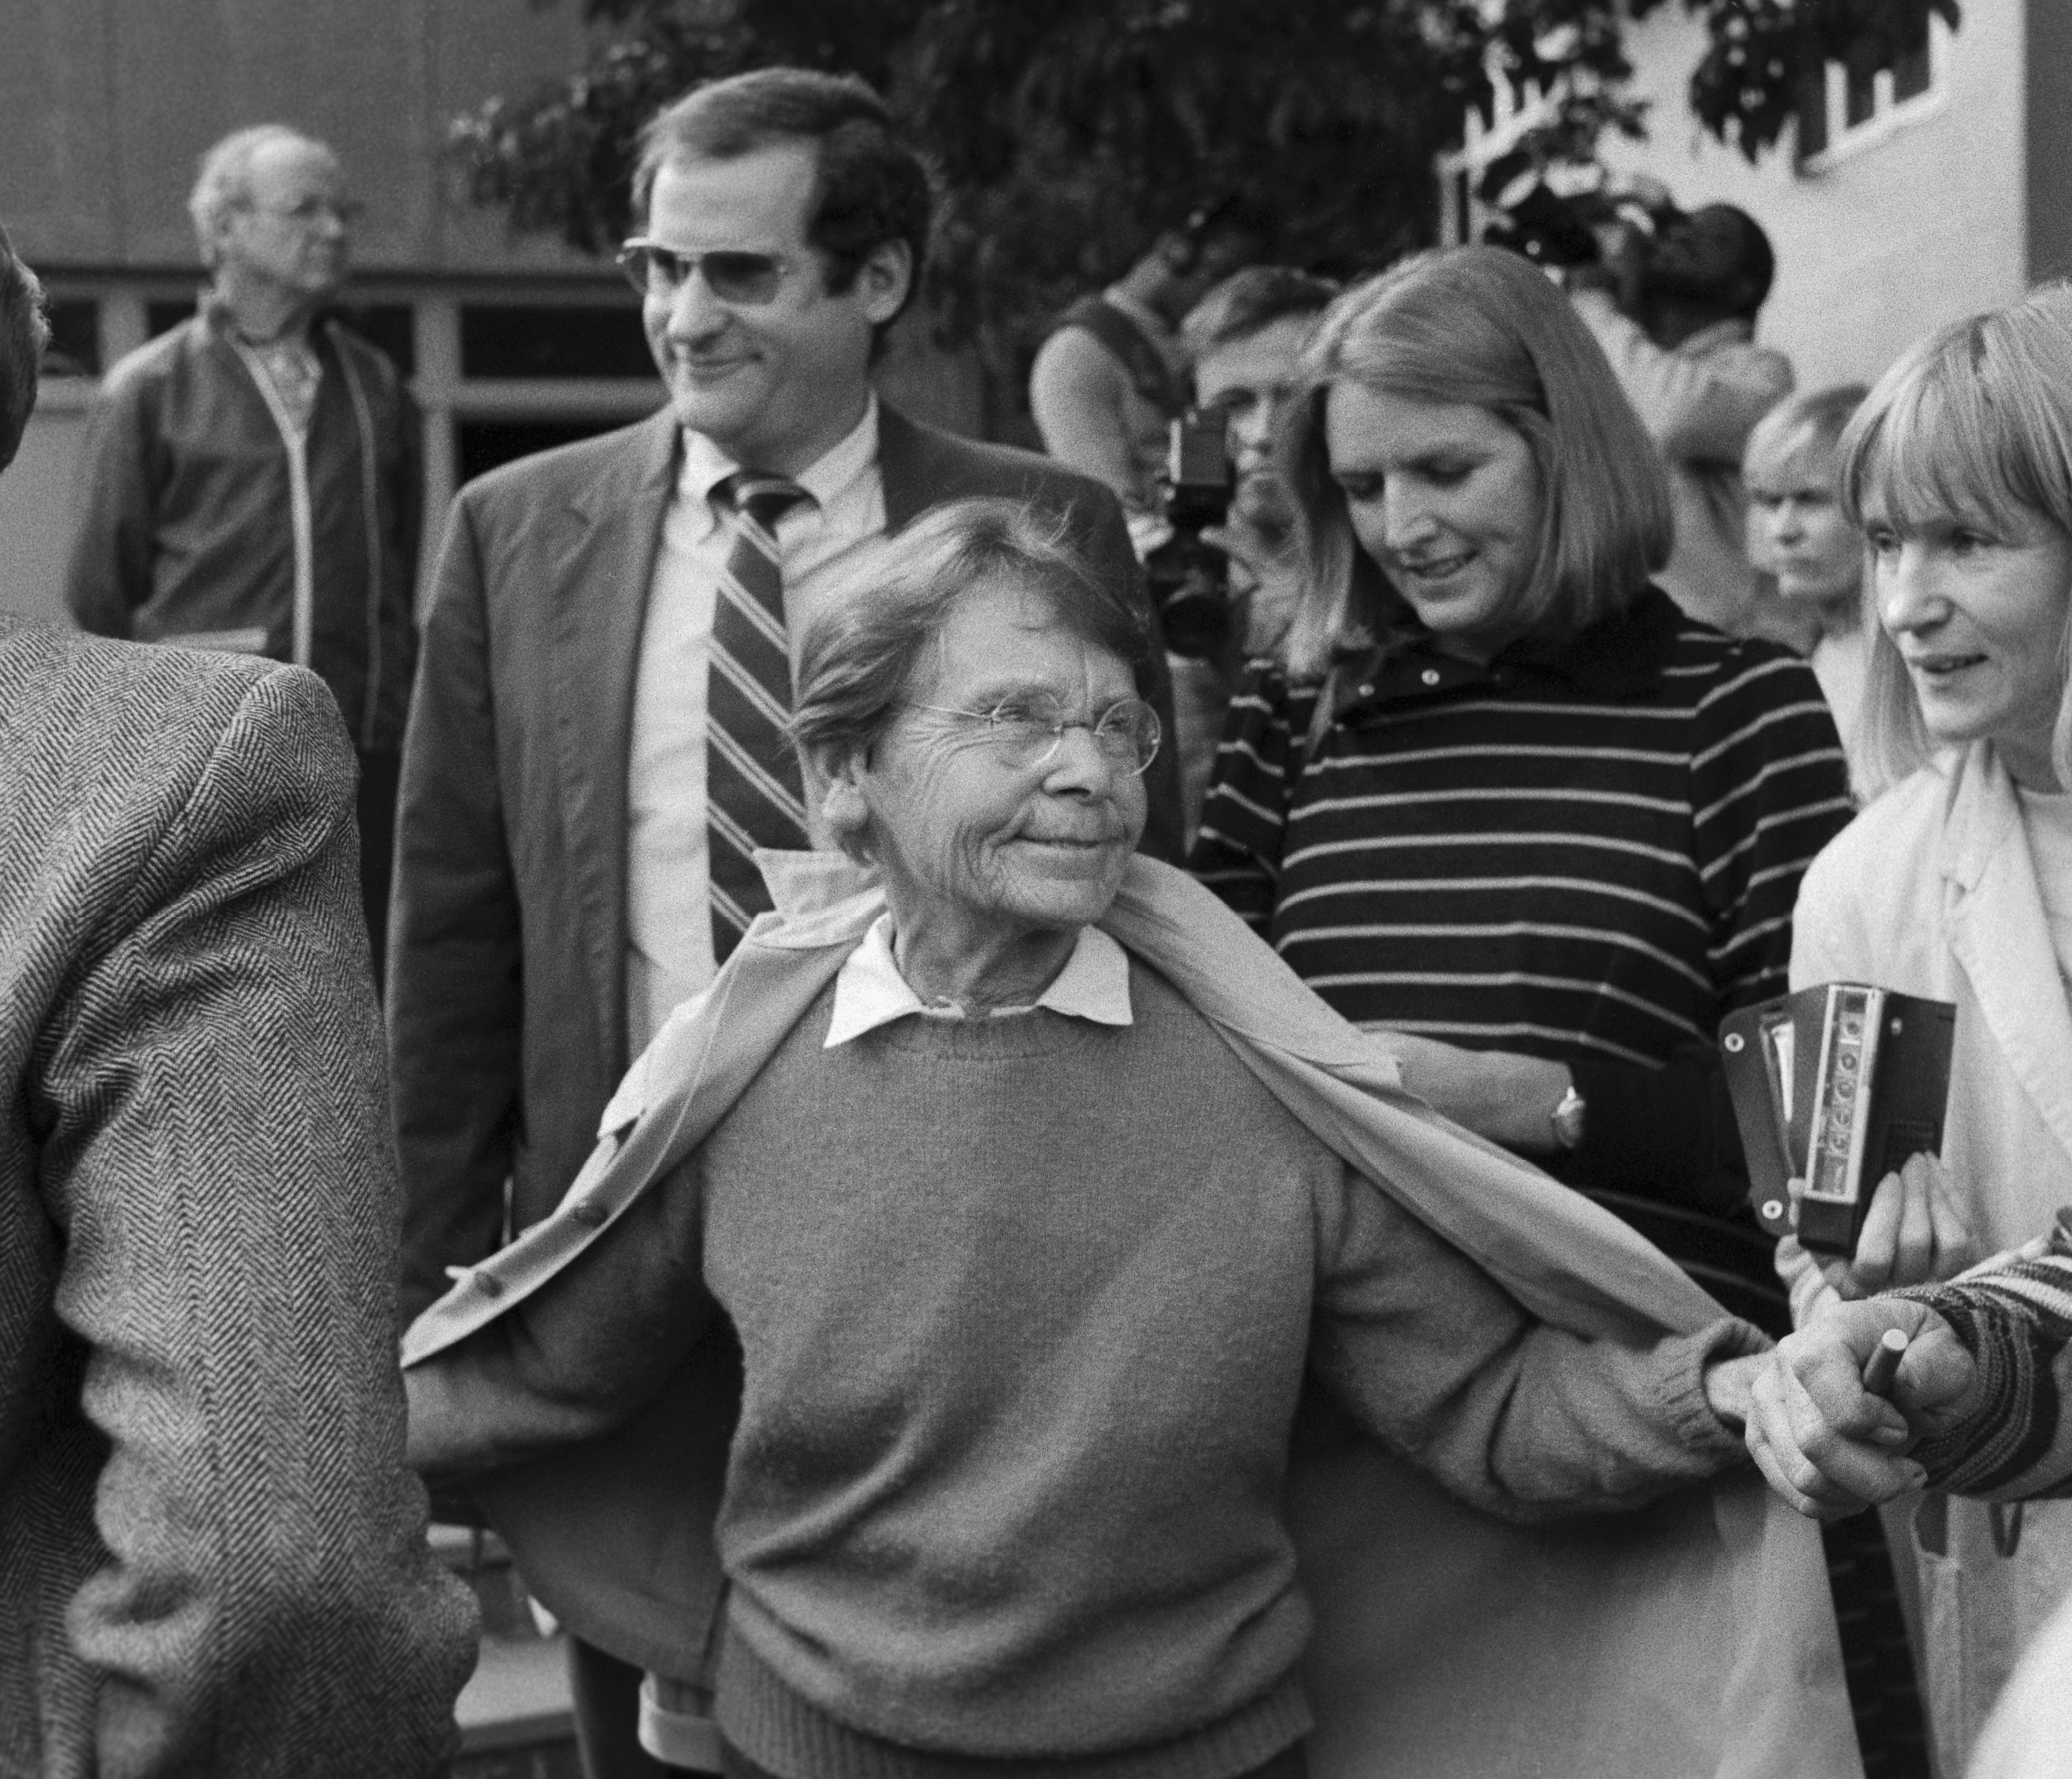 Barbara McClintock, Nobel Prize-winning geneticist, is shown surrounded by people, holding her coat open.